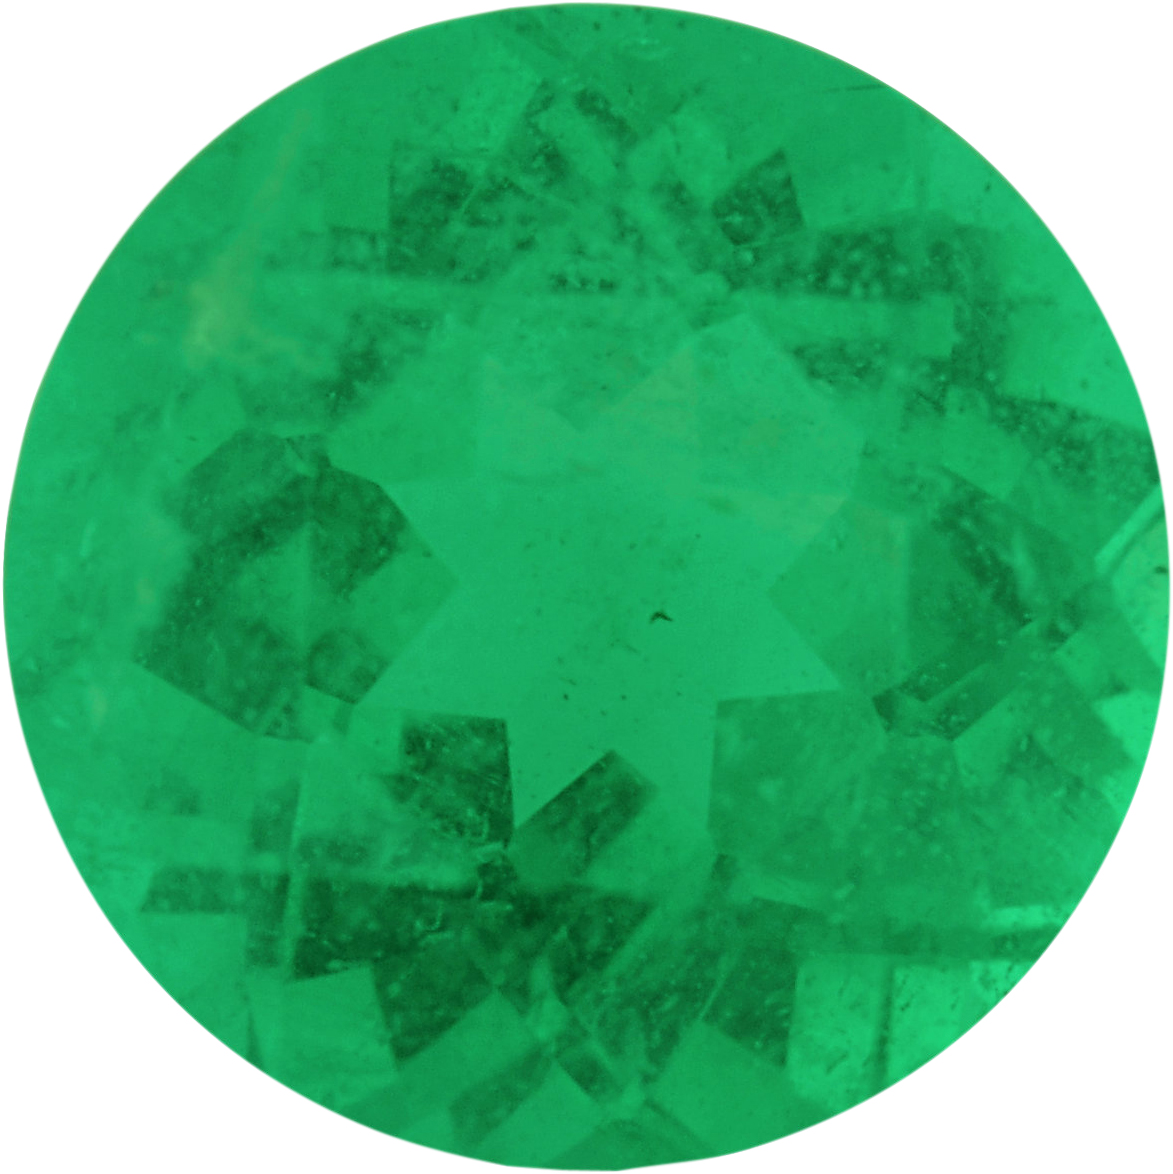 Lovely Loose Emerald Gem in Round Cut, Deep Green, 6.3 mm, 0.84 carats